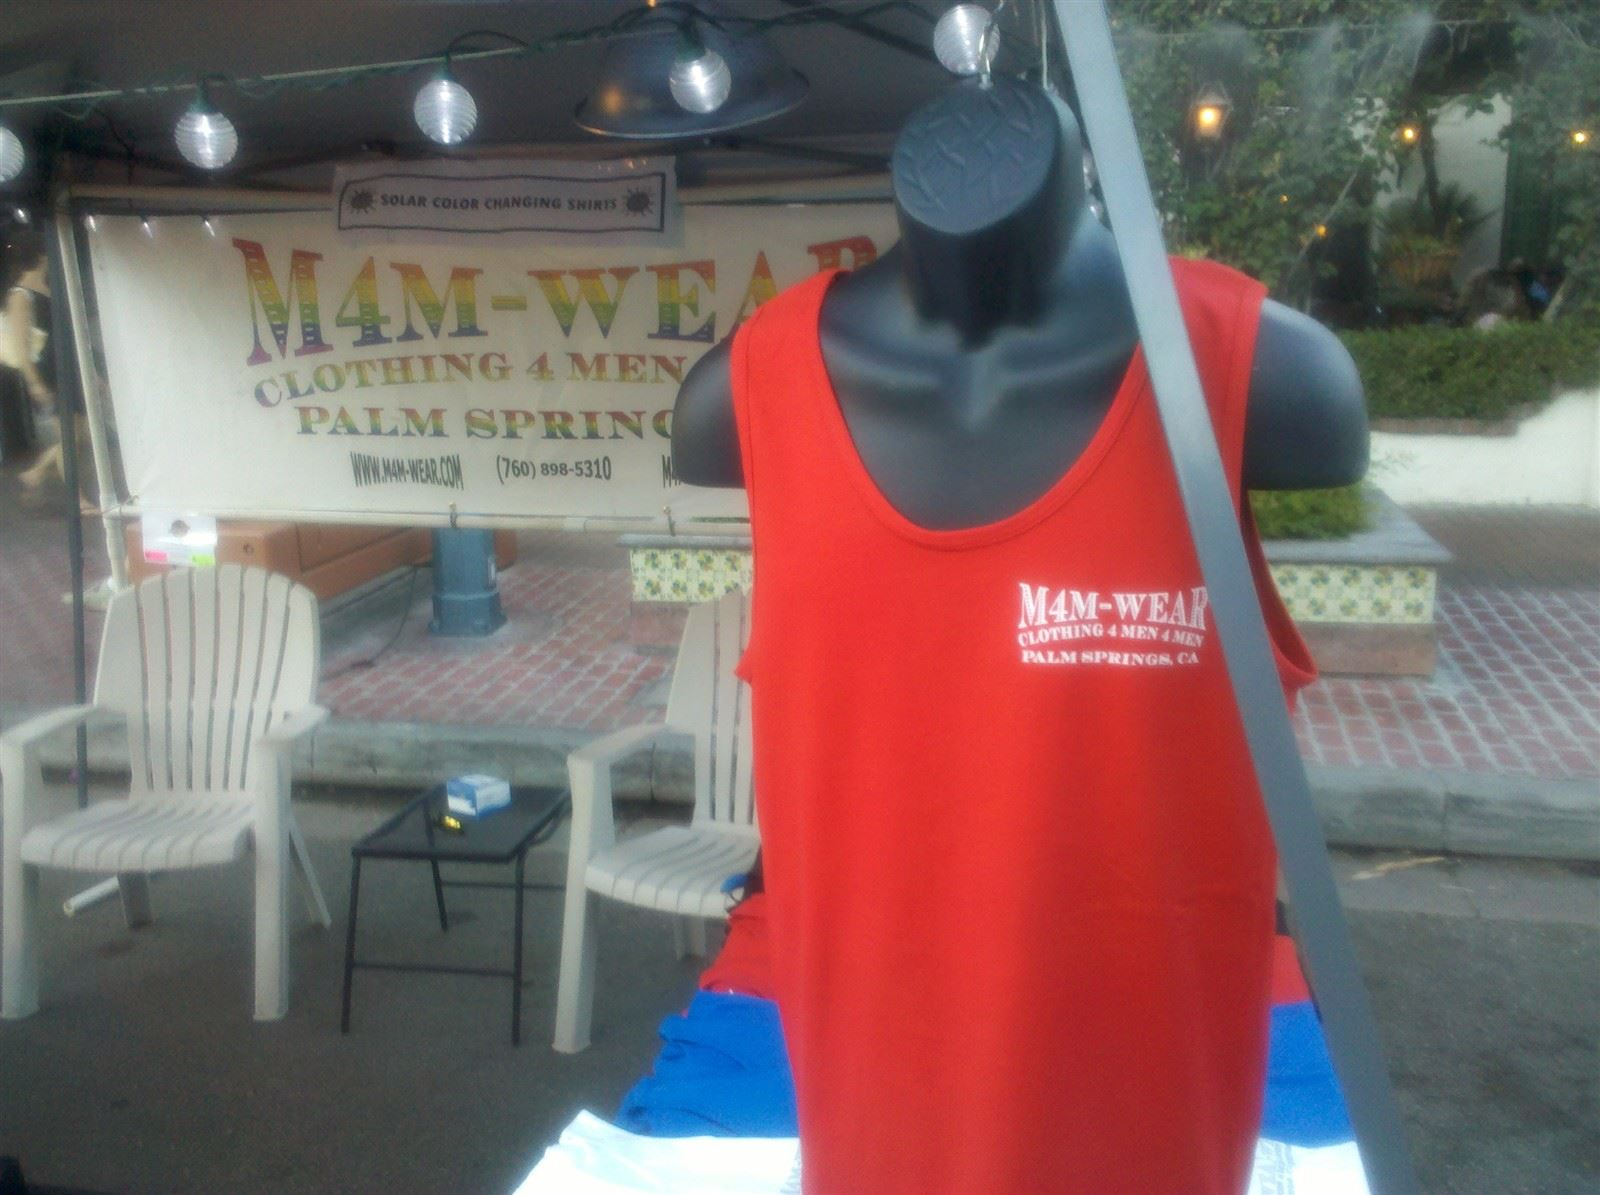 M4M-WEAR Shirt and Booth at Palm Springs Village Fest